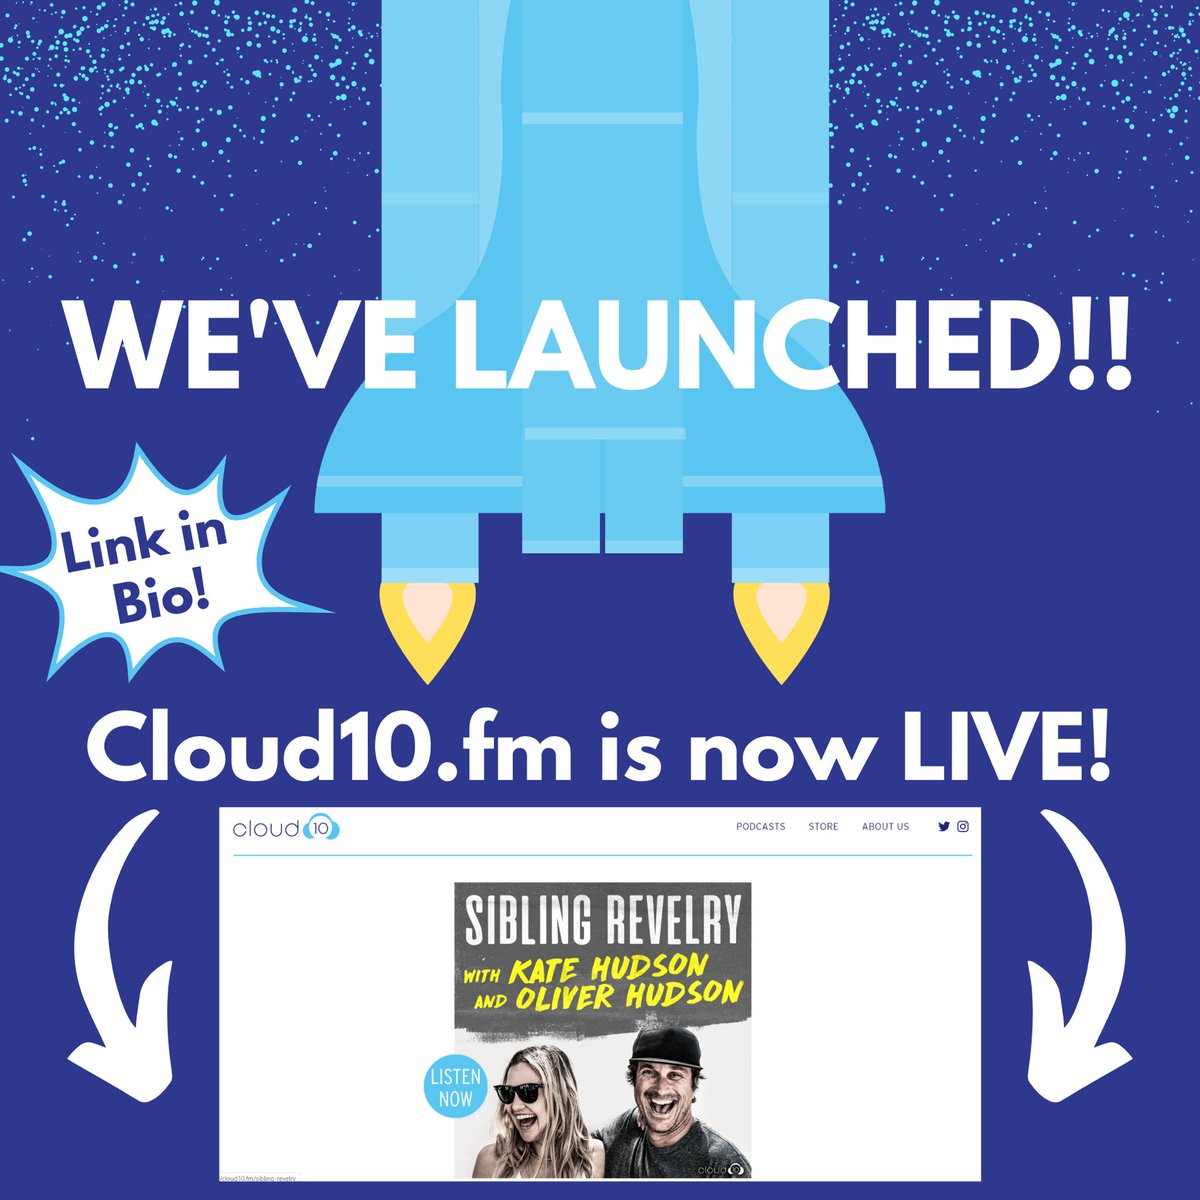 Our website, CLOUD10.FM, is now live!! Check it out! {link in bio!}